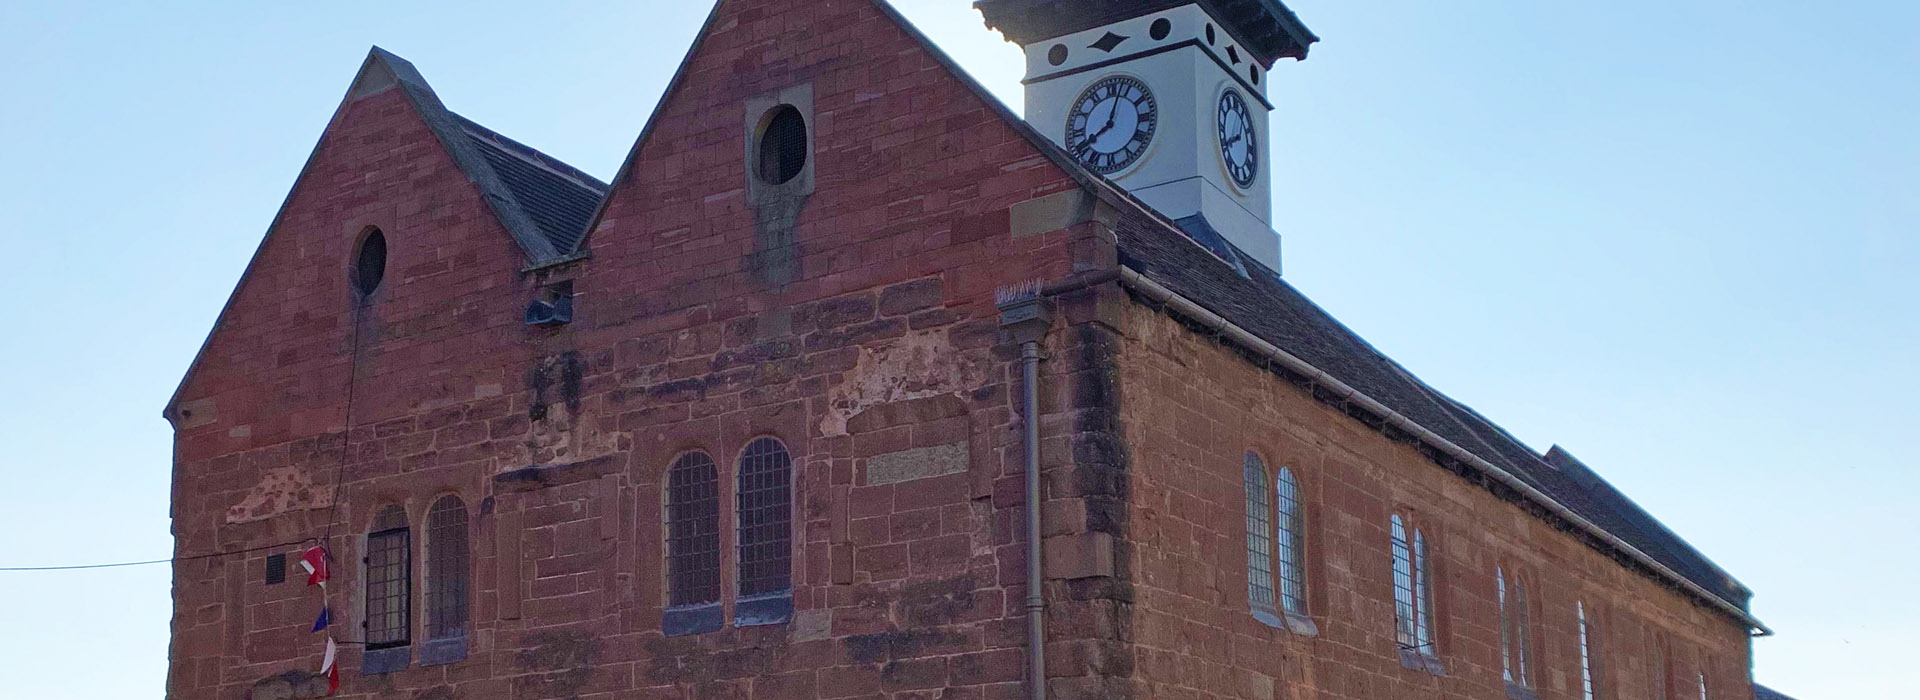 Recently repaired historic Market House in Ross-On-Wye town Centre, Herefordshire